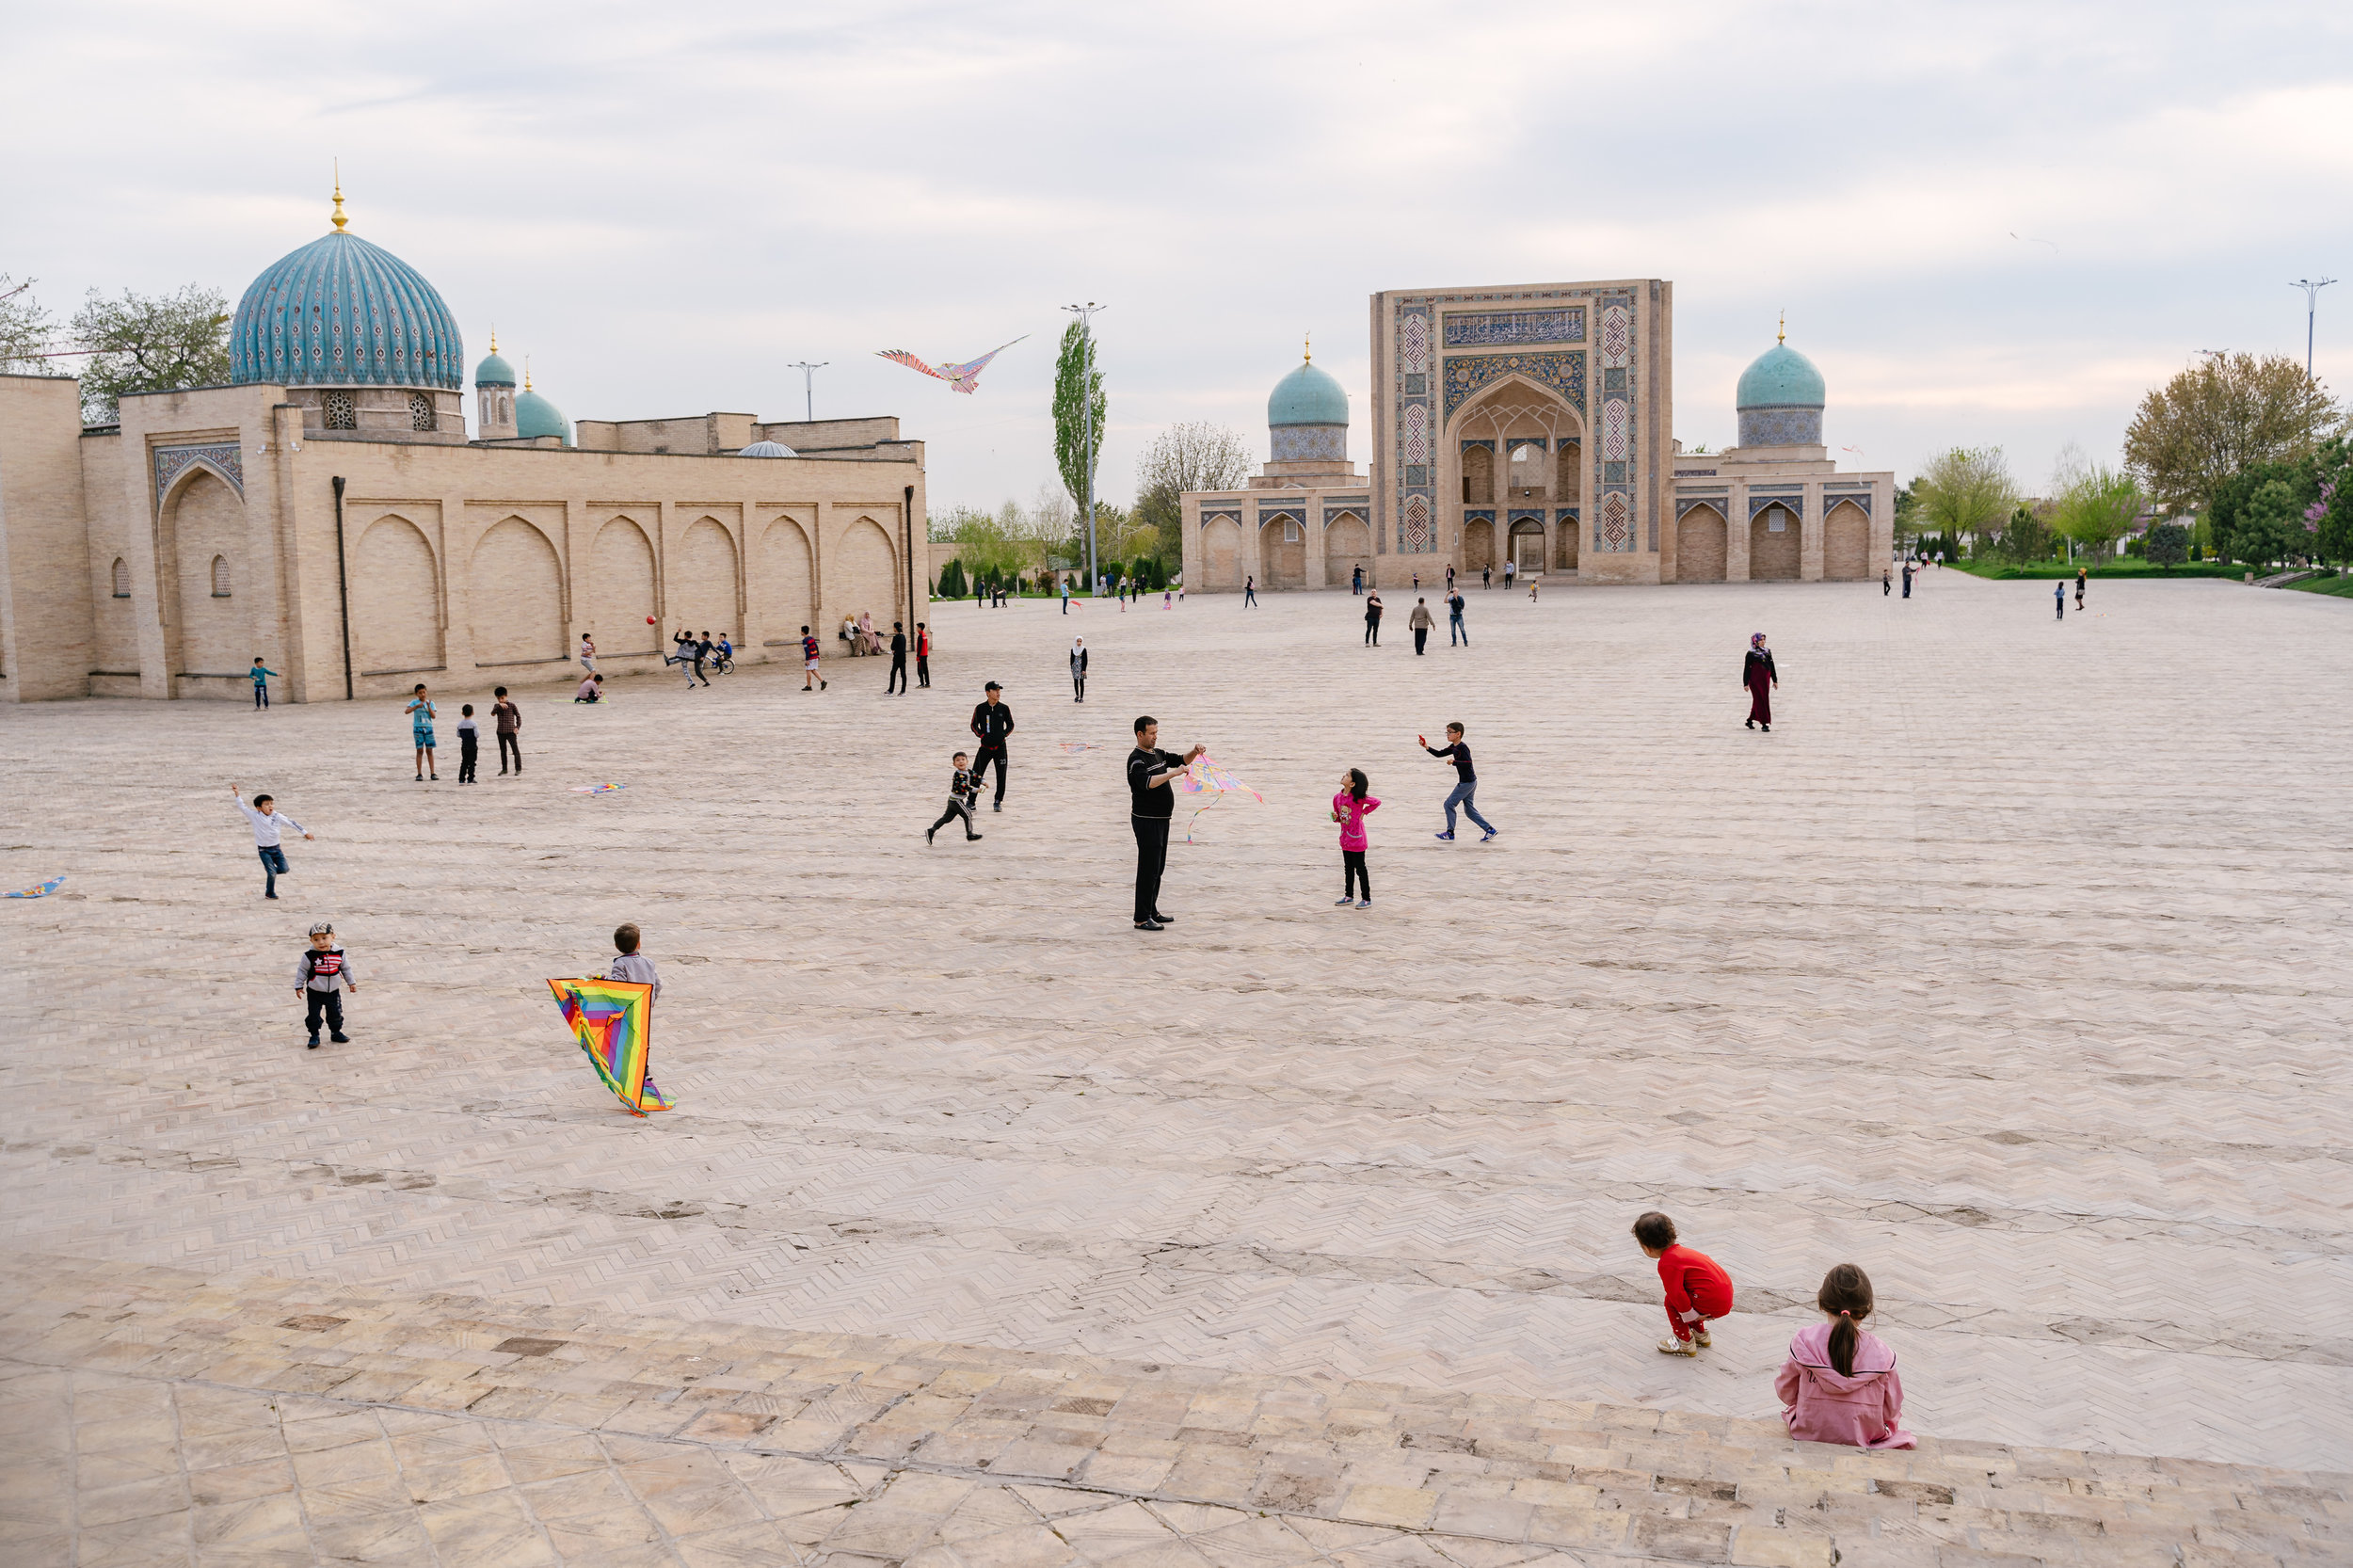 Sunday afternoon at Khast Imam Square. Kite flying is a major free time activity in the Middle East and Central Asia.